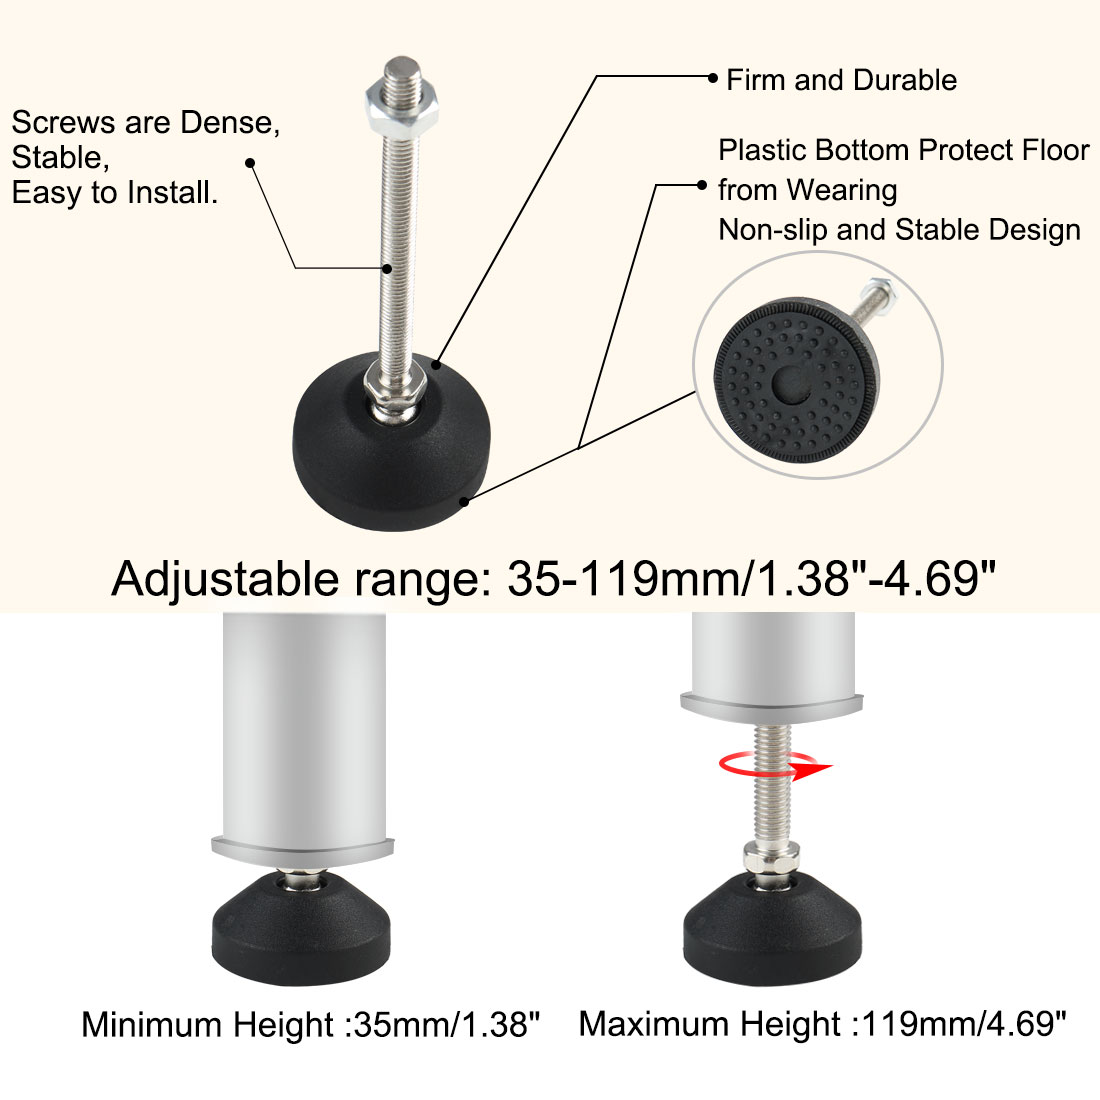 M8 x 94 x 50mm Leveling Foot Adjustable Leveler Protector for Machine Leg 4pcs - image 5 of 7